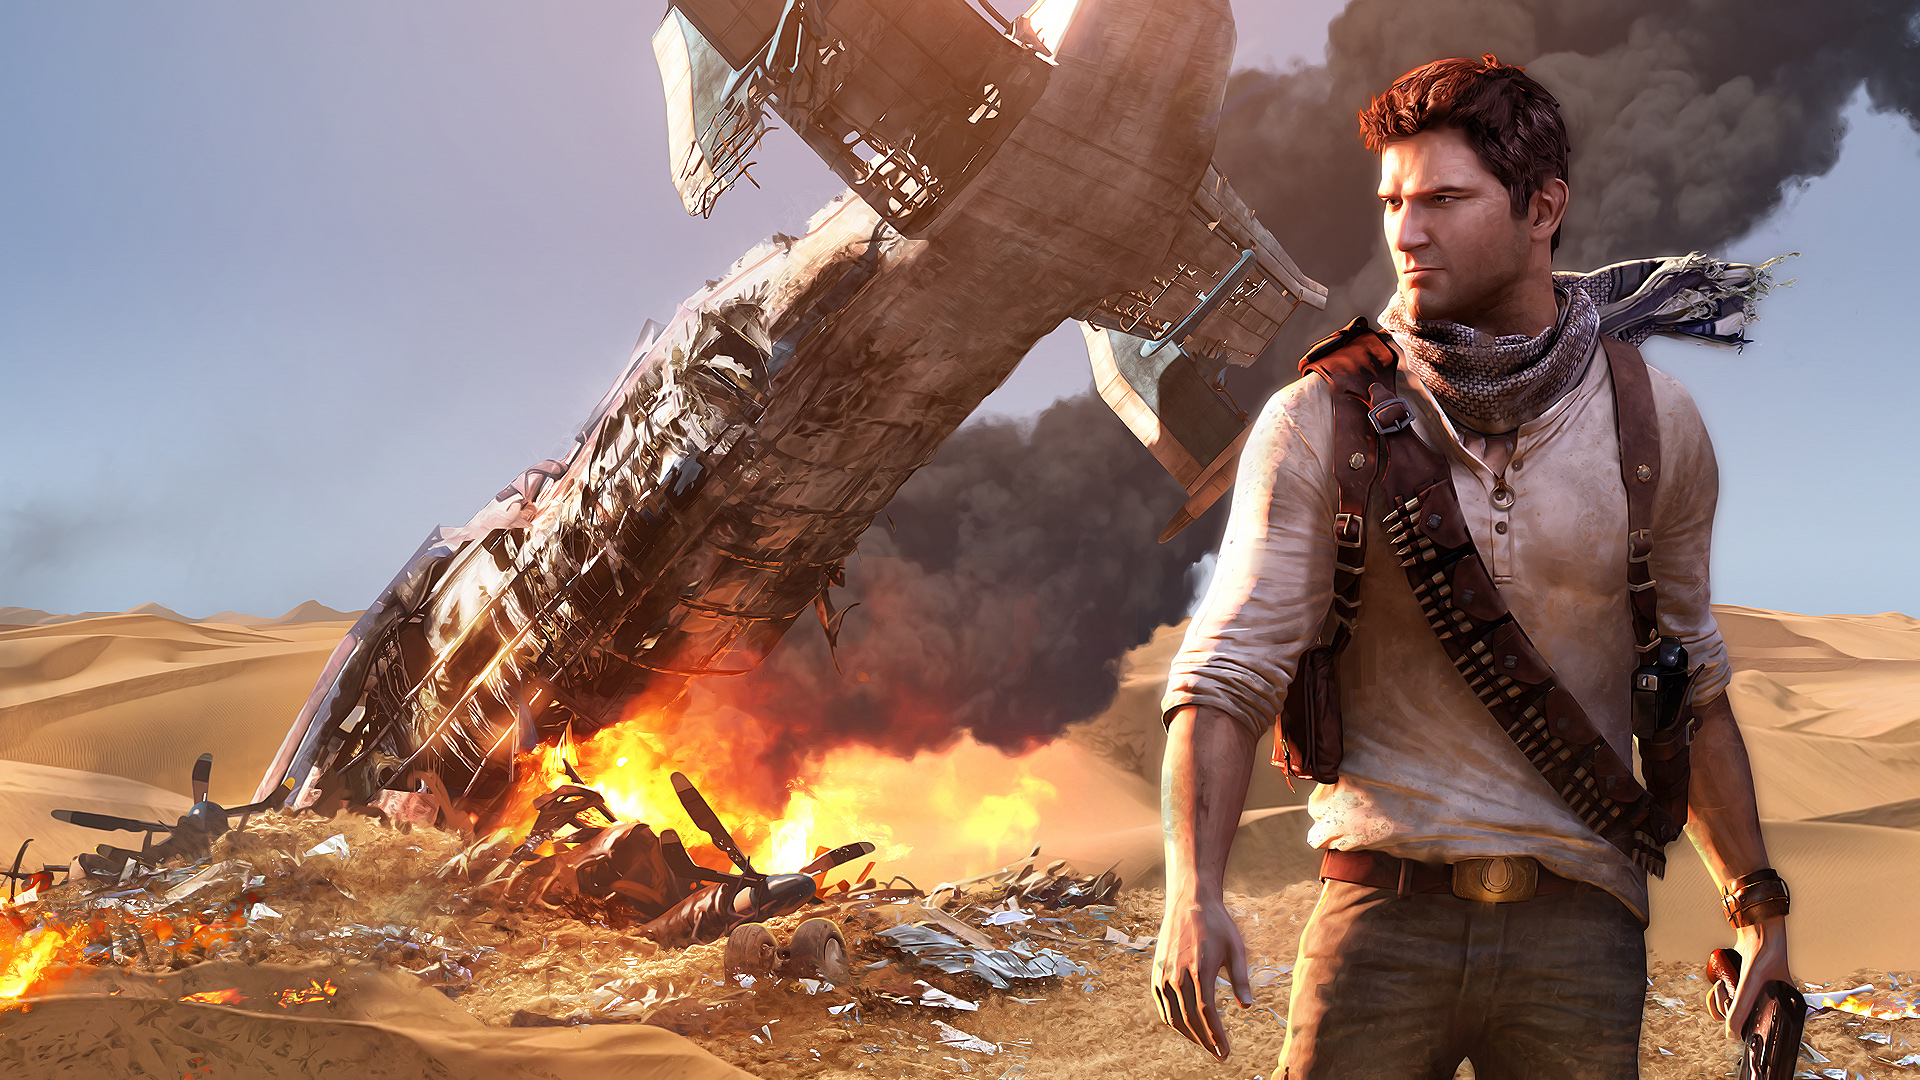 Hideo Kojima Shares First Details Of His Mysterious New Game uncharted